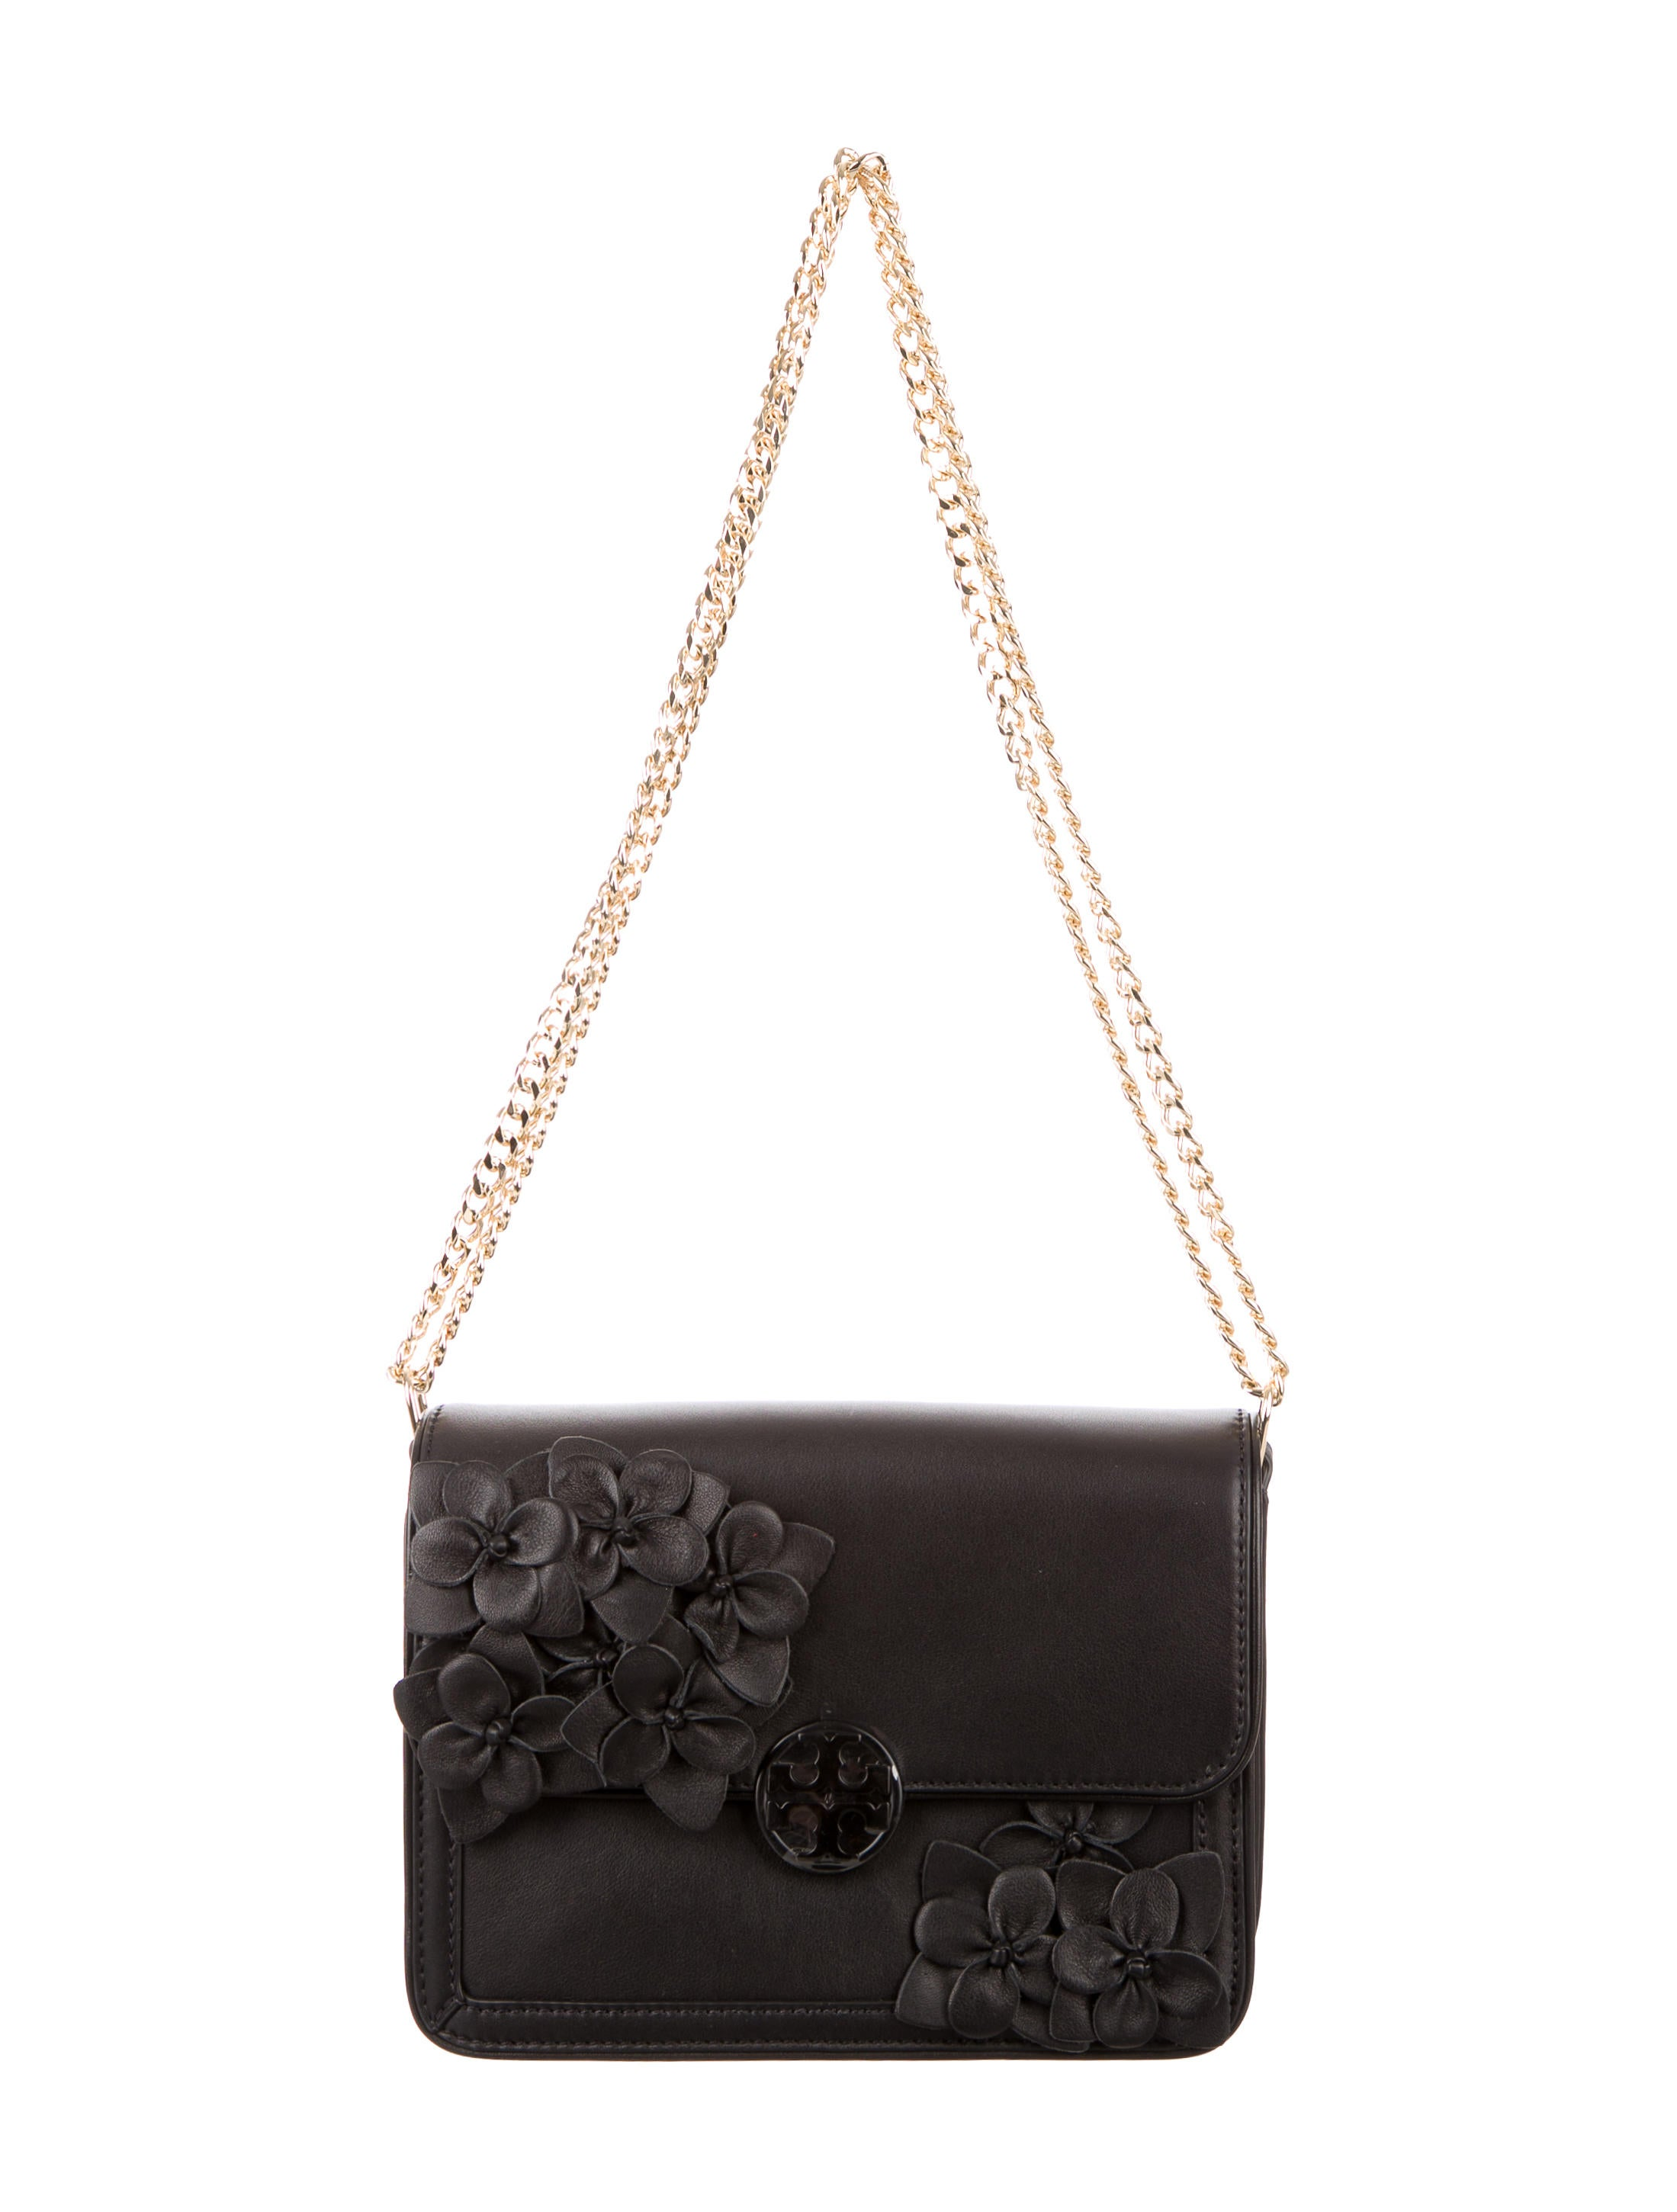 6c37504f1ee Tory Burch Duet Chain Flower Convertible Shoulder Bag w  Tags ...